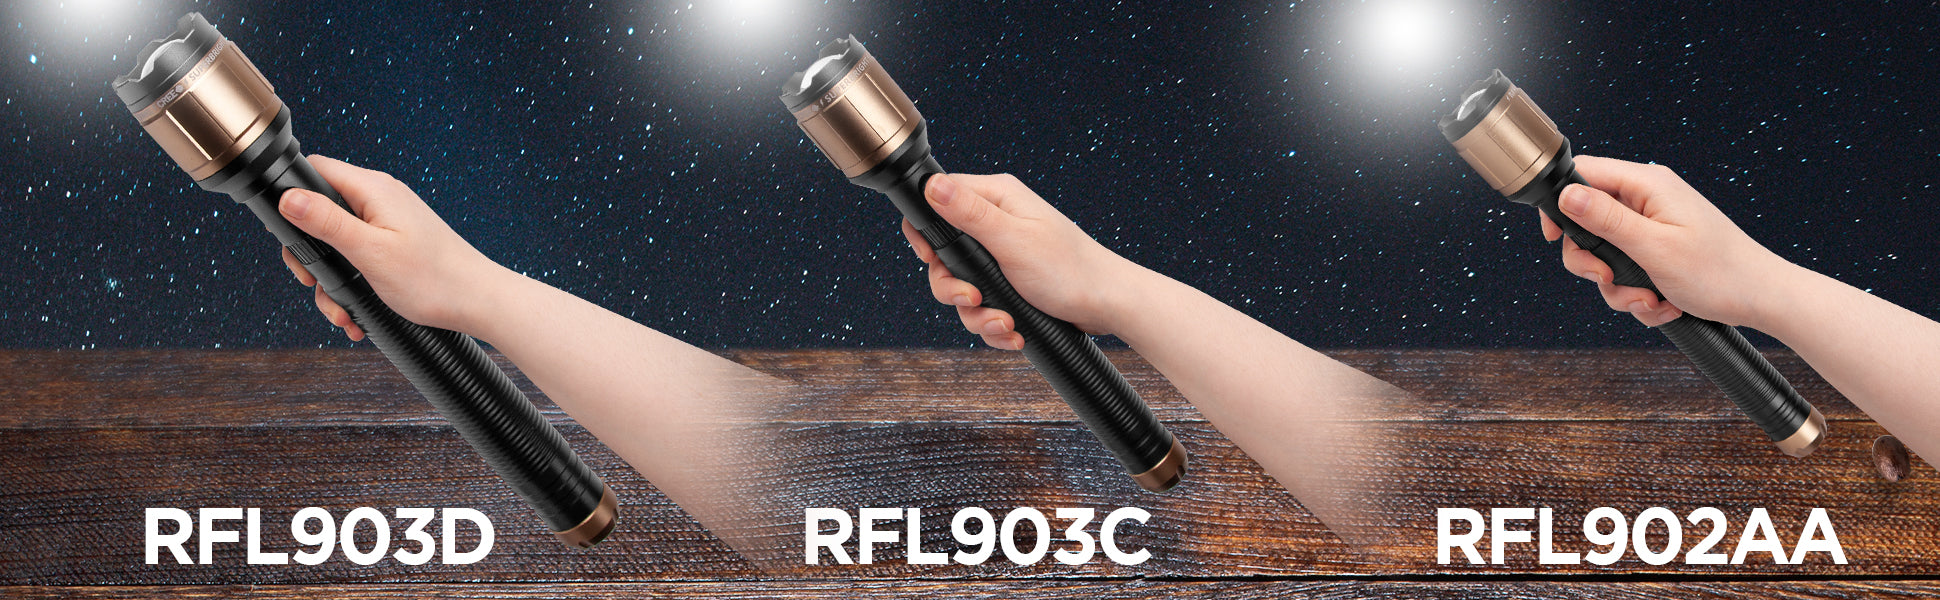 range of duronic torches shown: RFL903D, RFL903C and RFL902AA